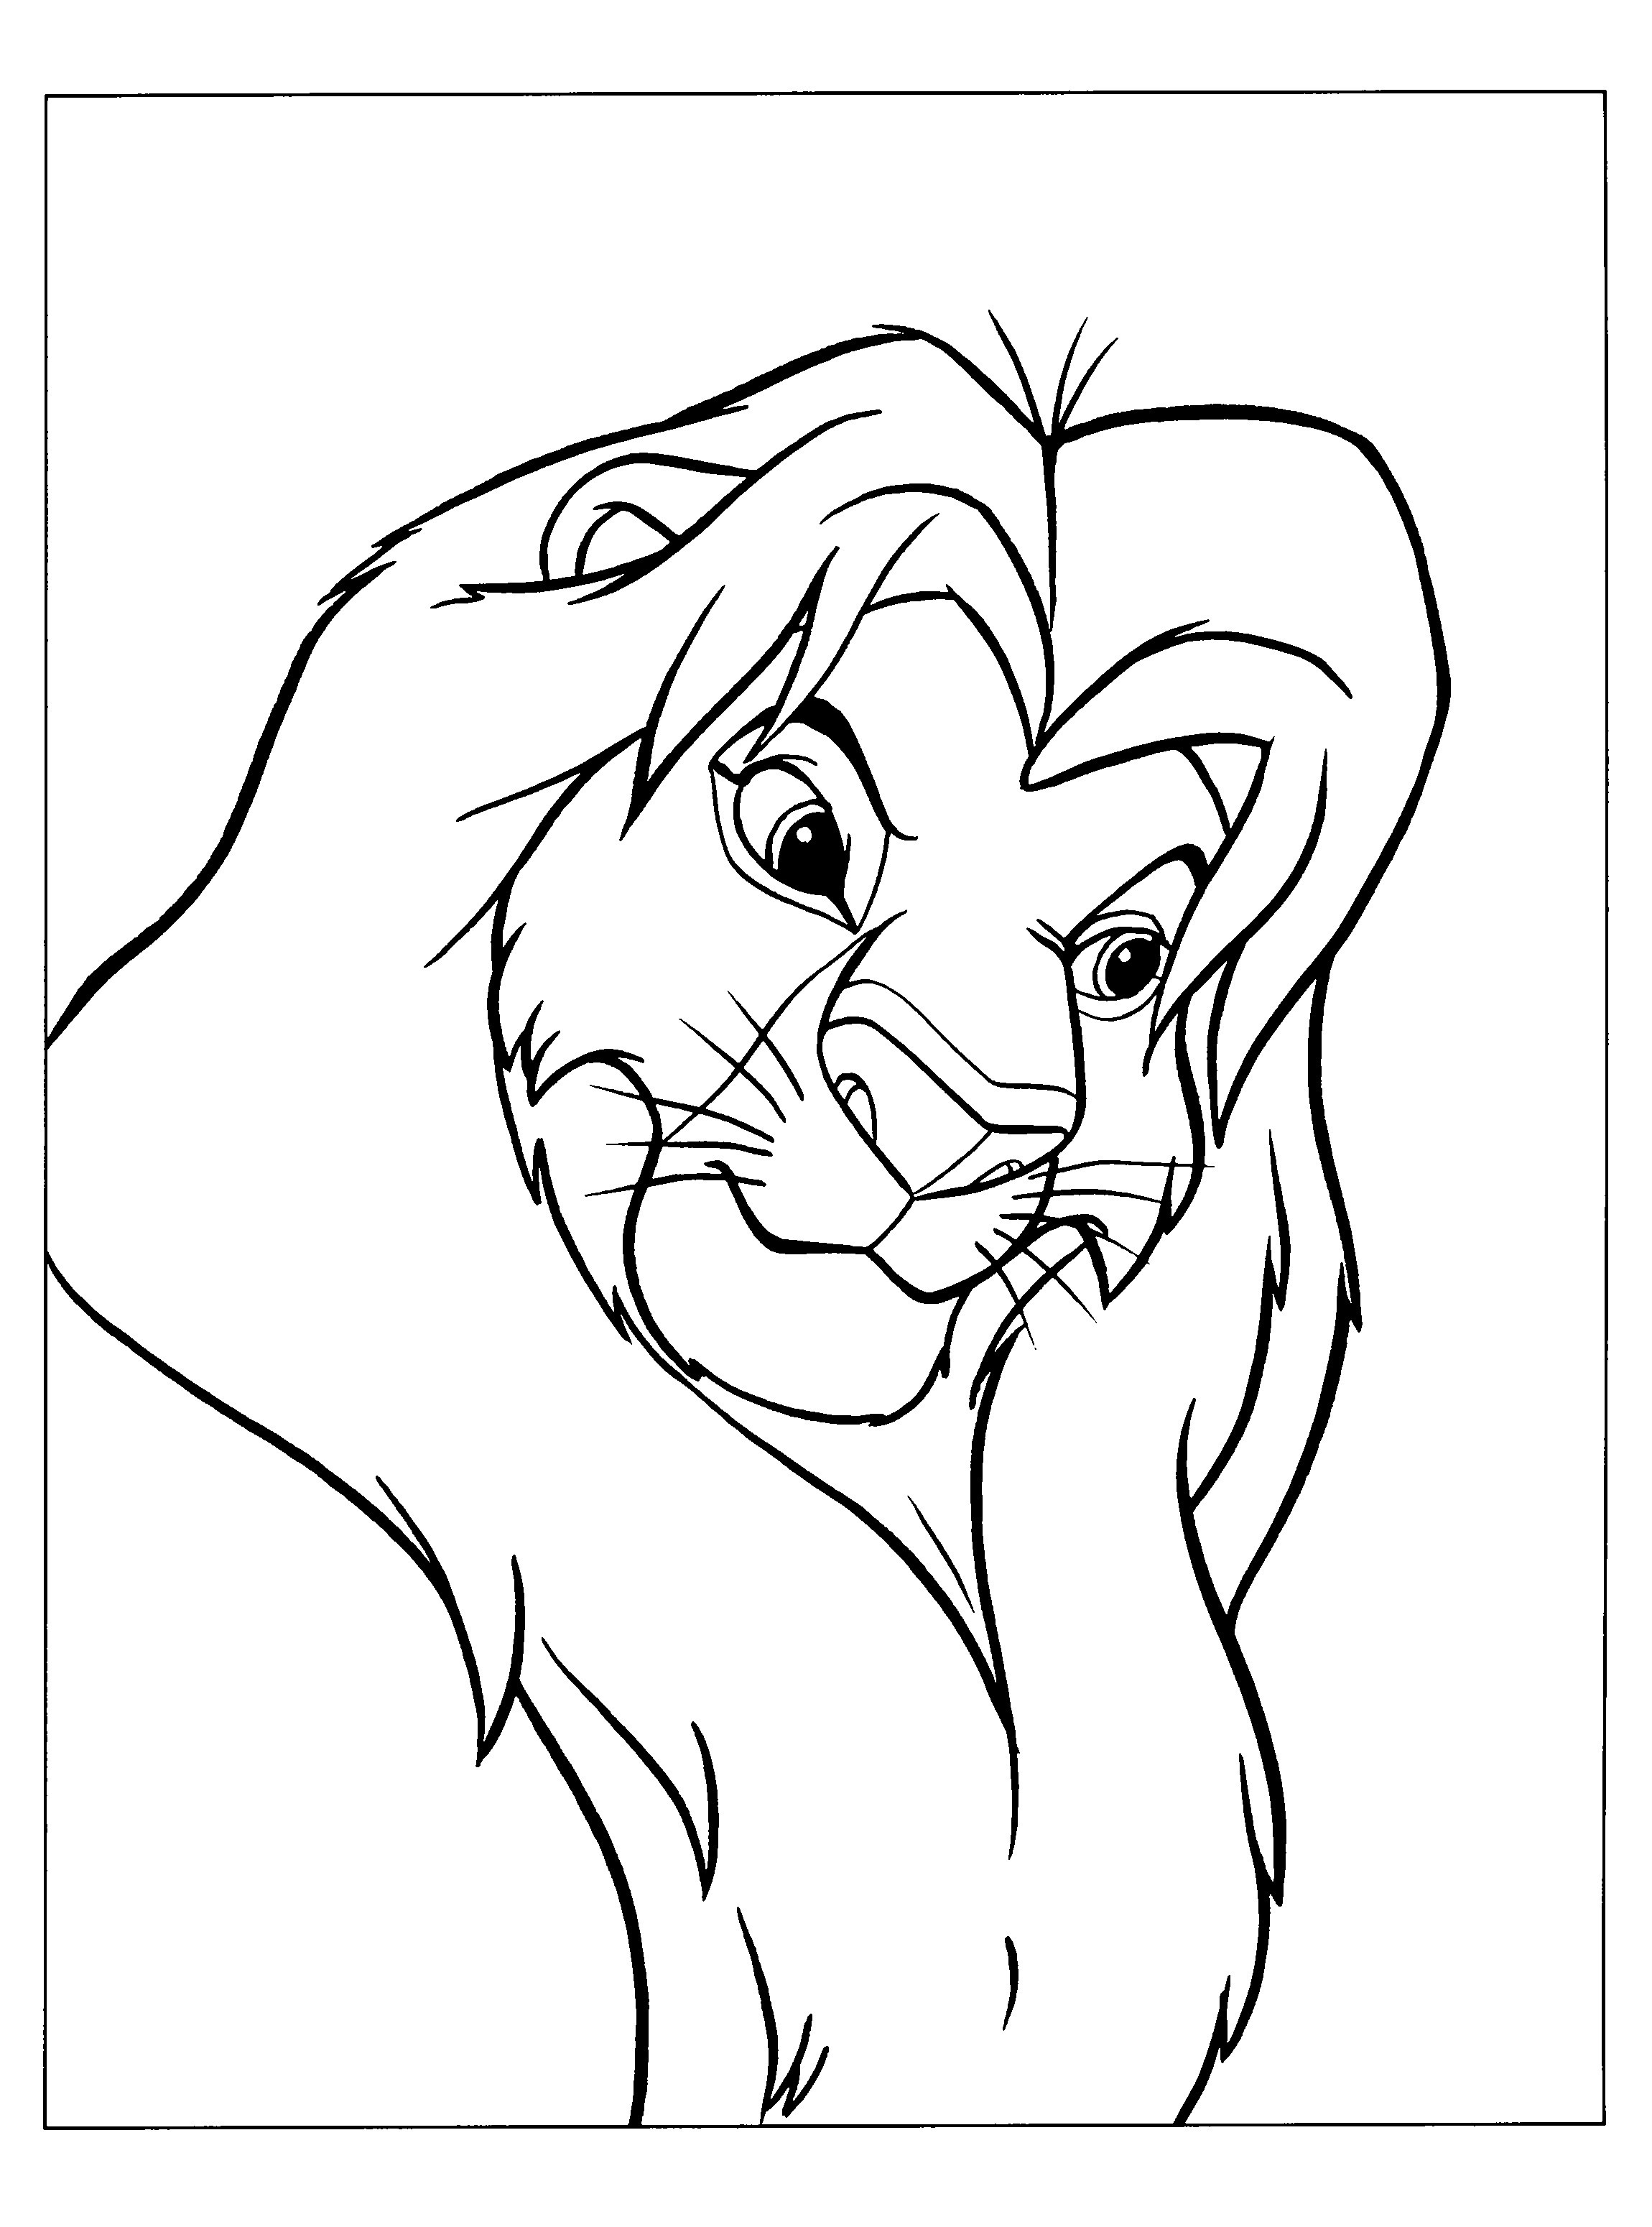 2300x3100 Surprising Simba And Nala Coloring Pages With Lion King Amazing